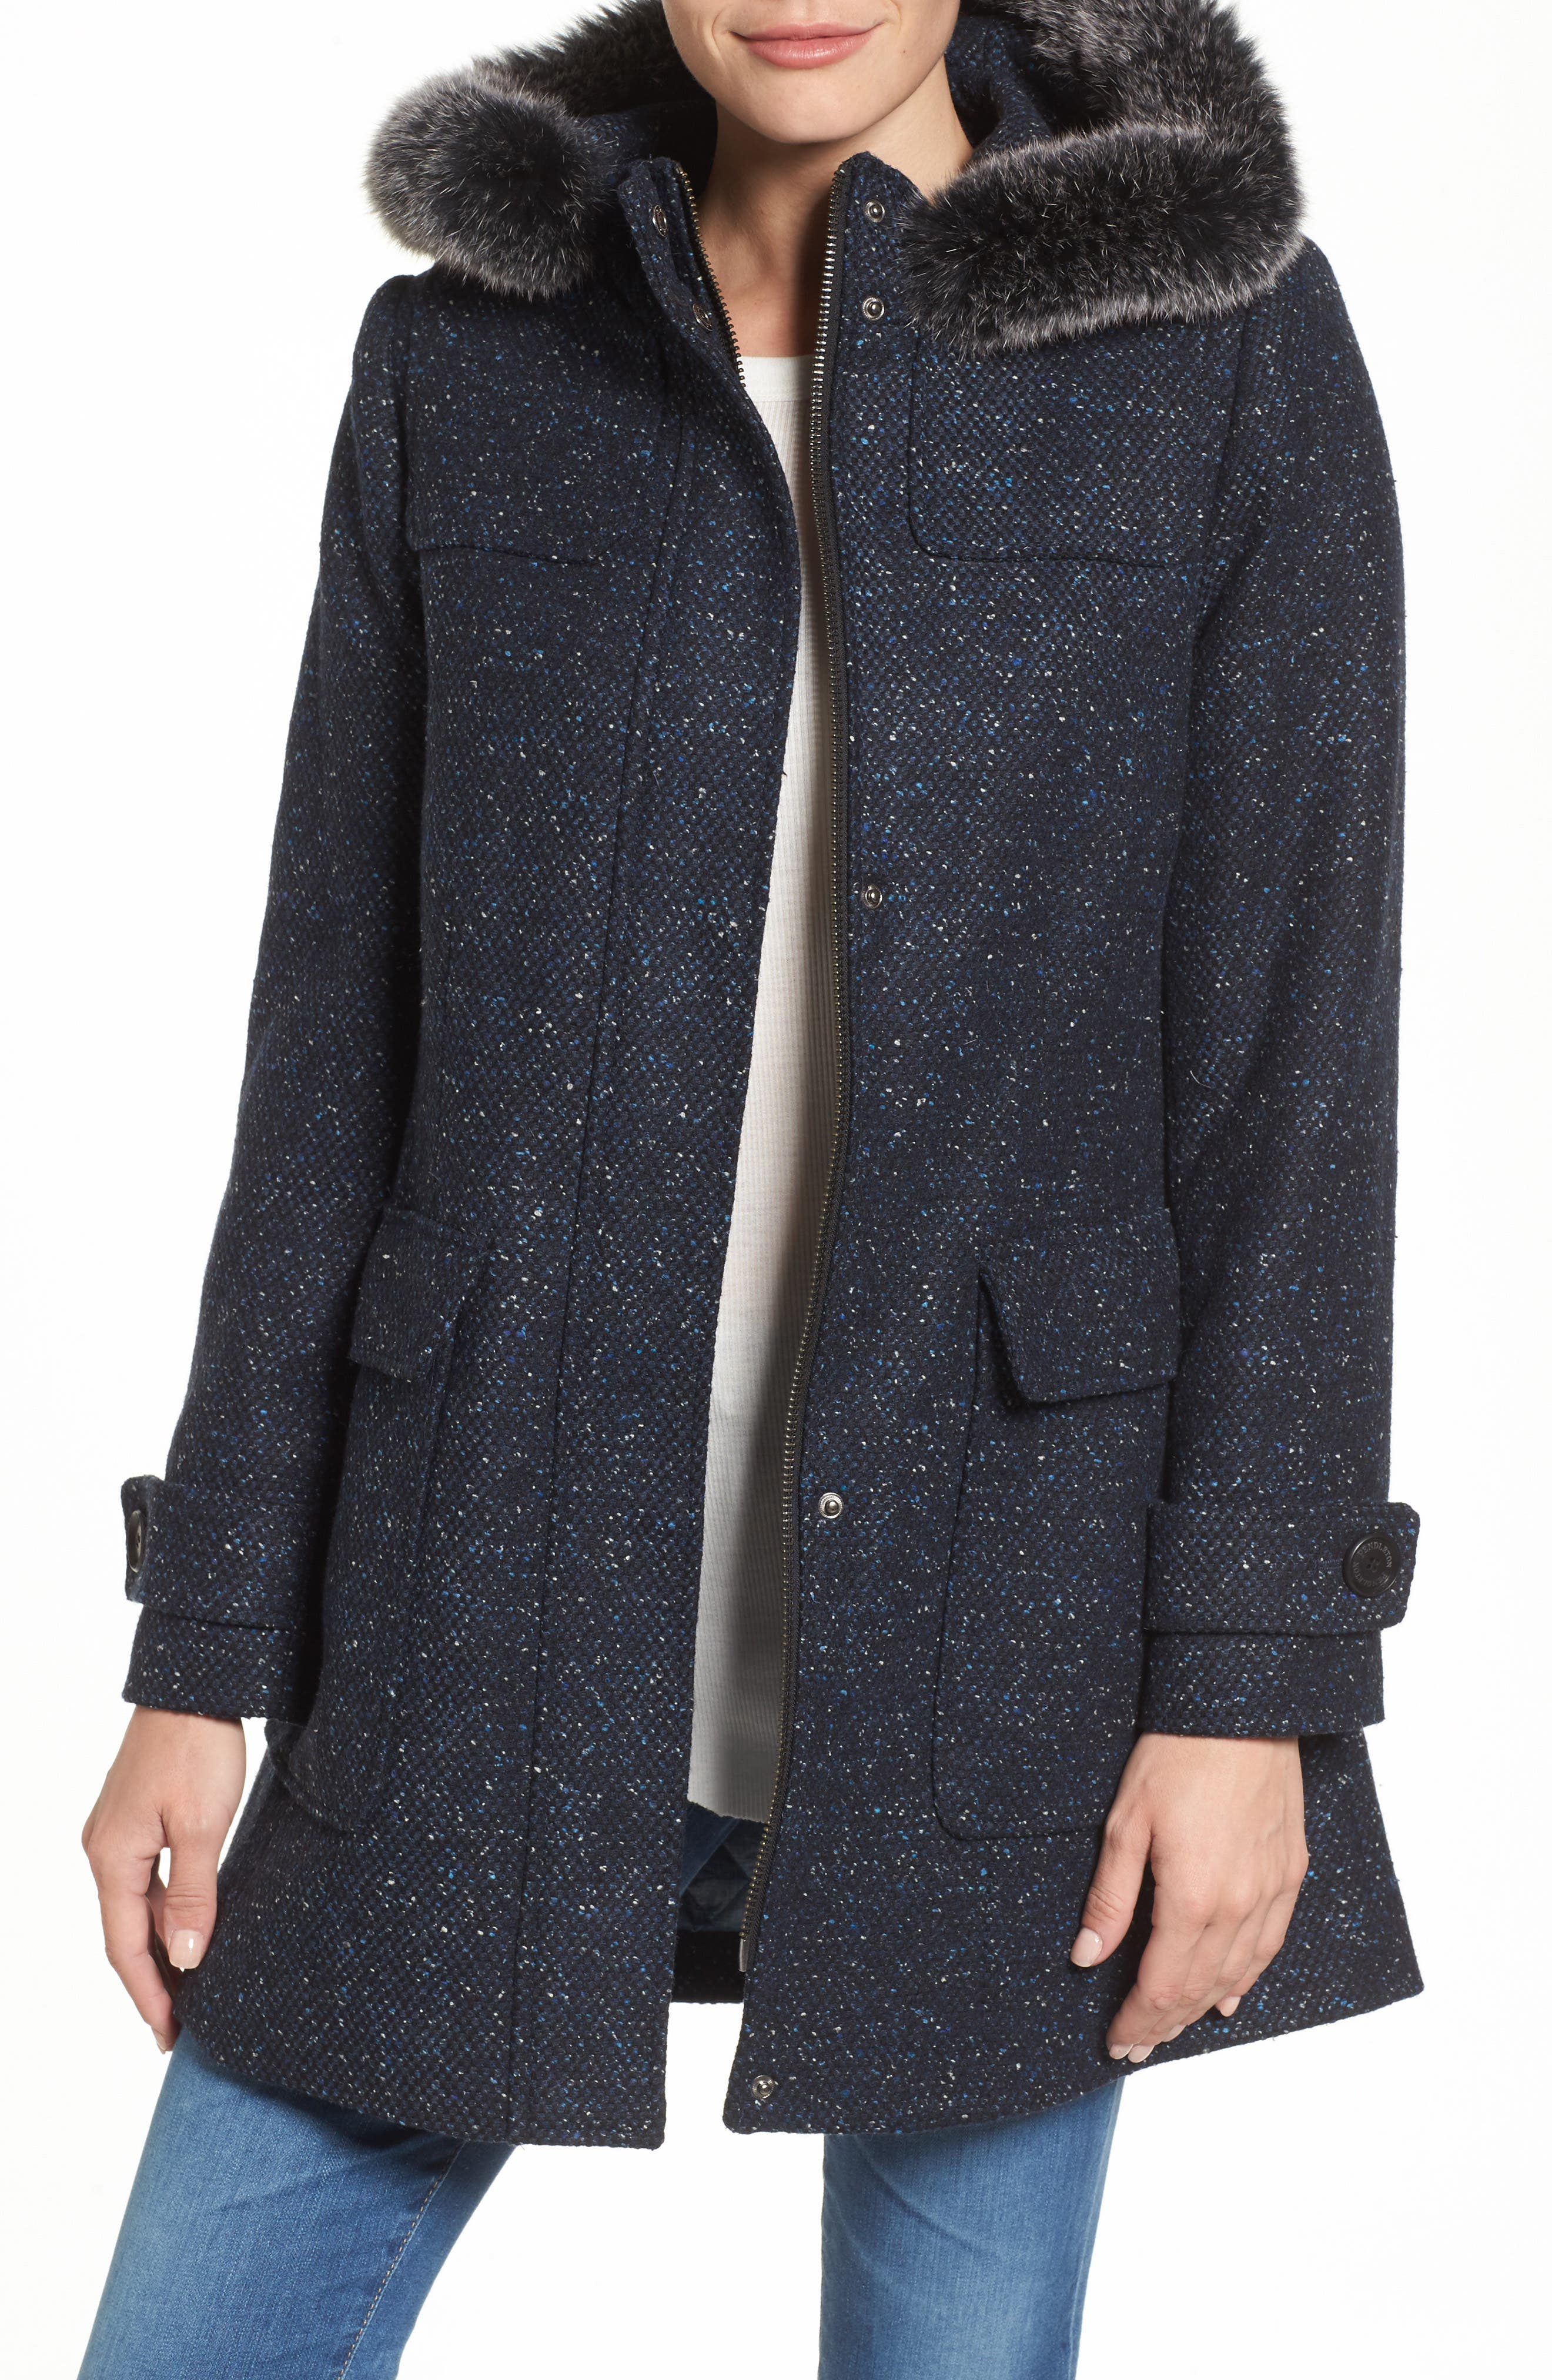 Alternate Image 1 Selected - Pendleton Portland Wool Duffle Coat with Genuine Fur Trim